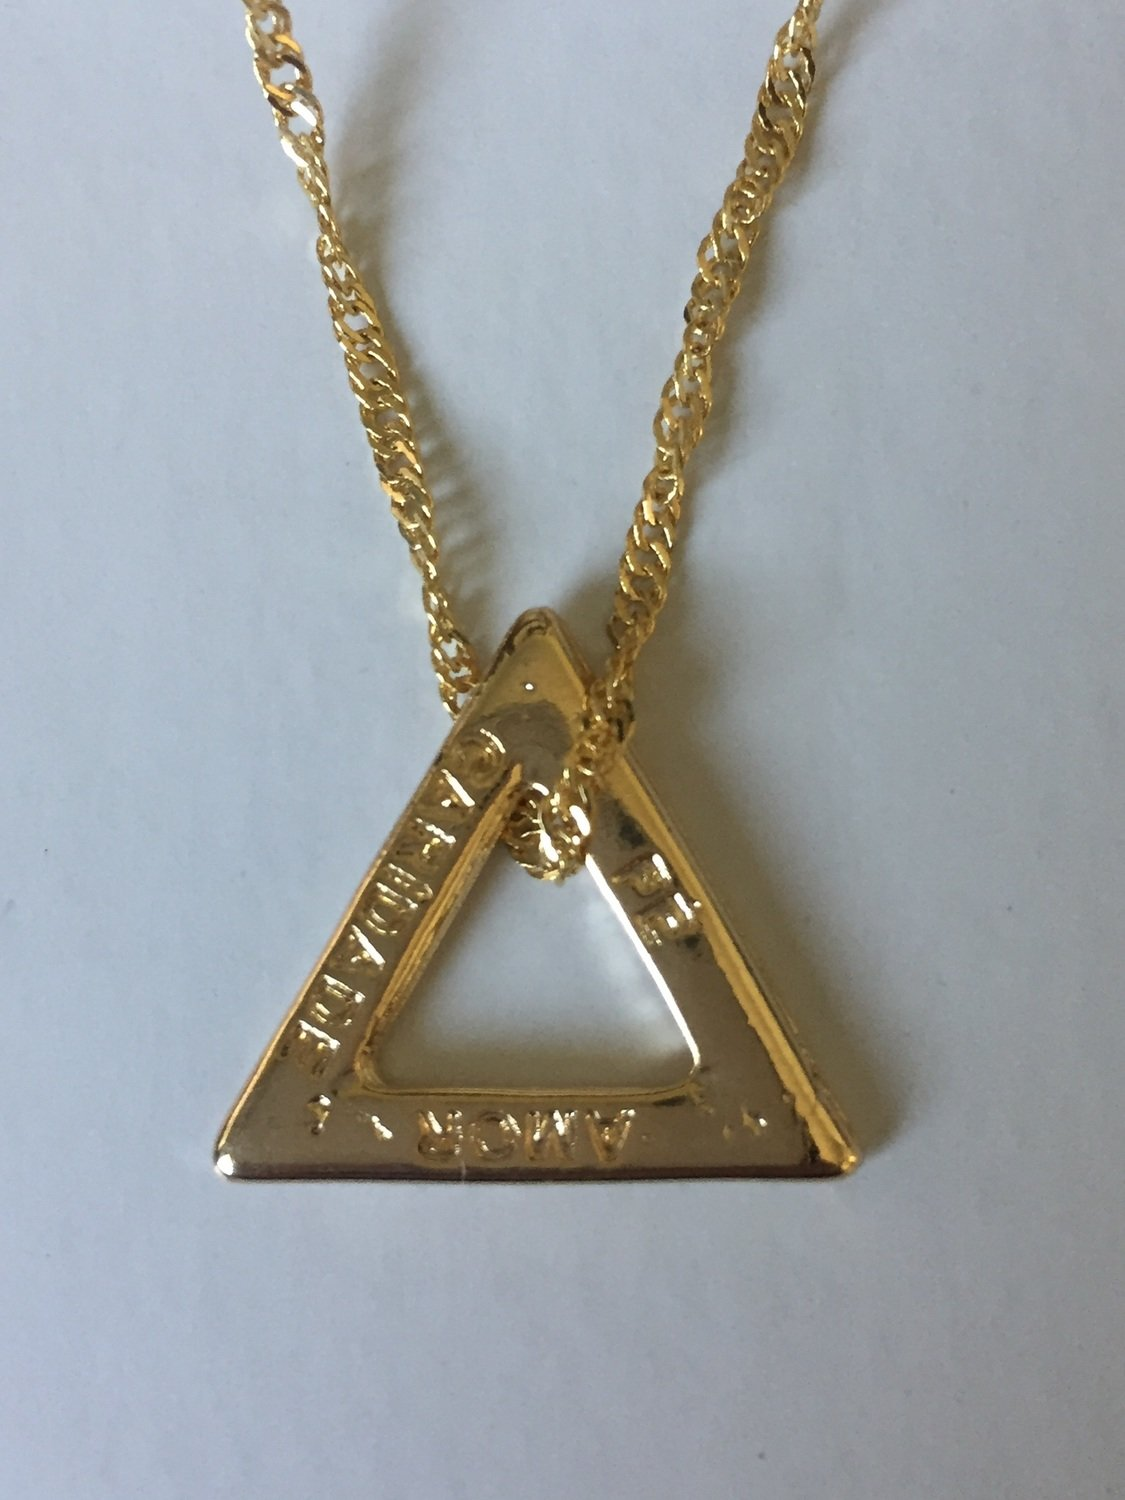 *NEW* John Of God Blessed Casa Gold or Silver Engraved Triangle Necklace